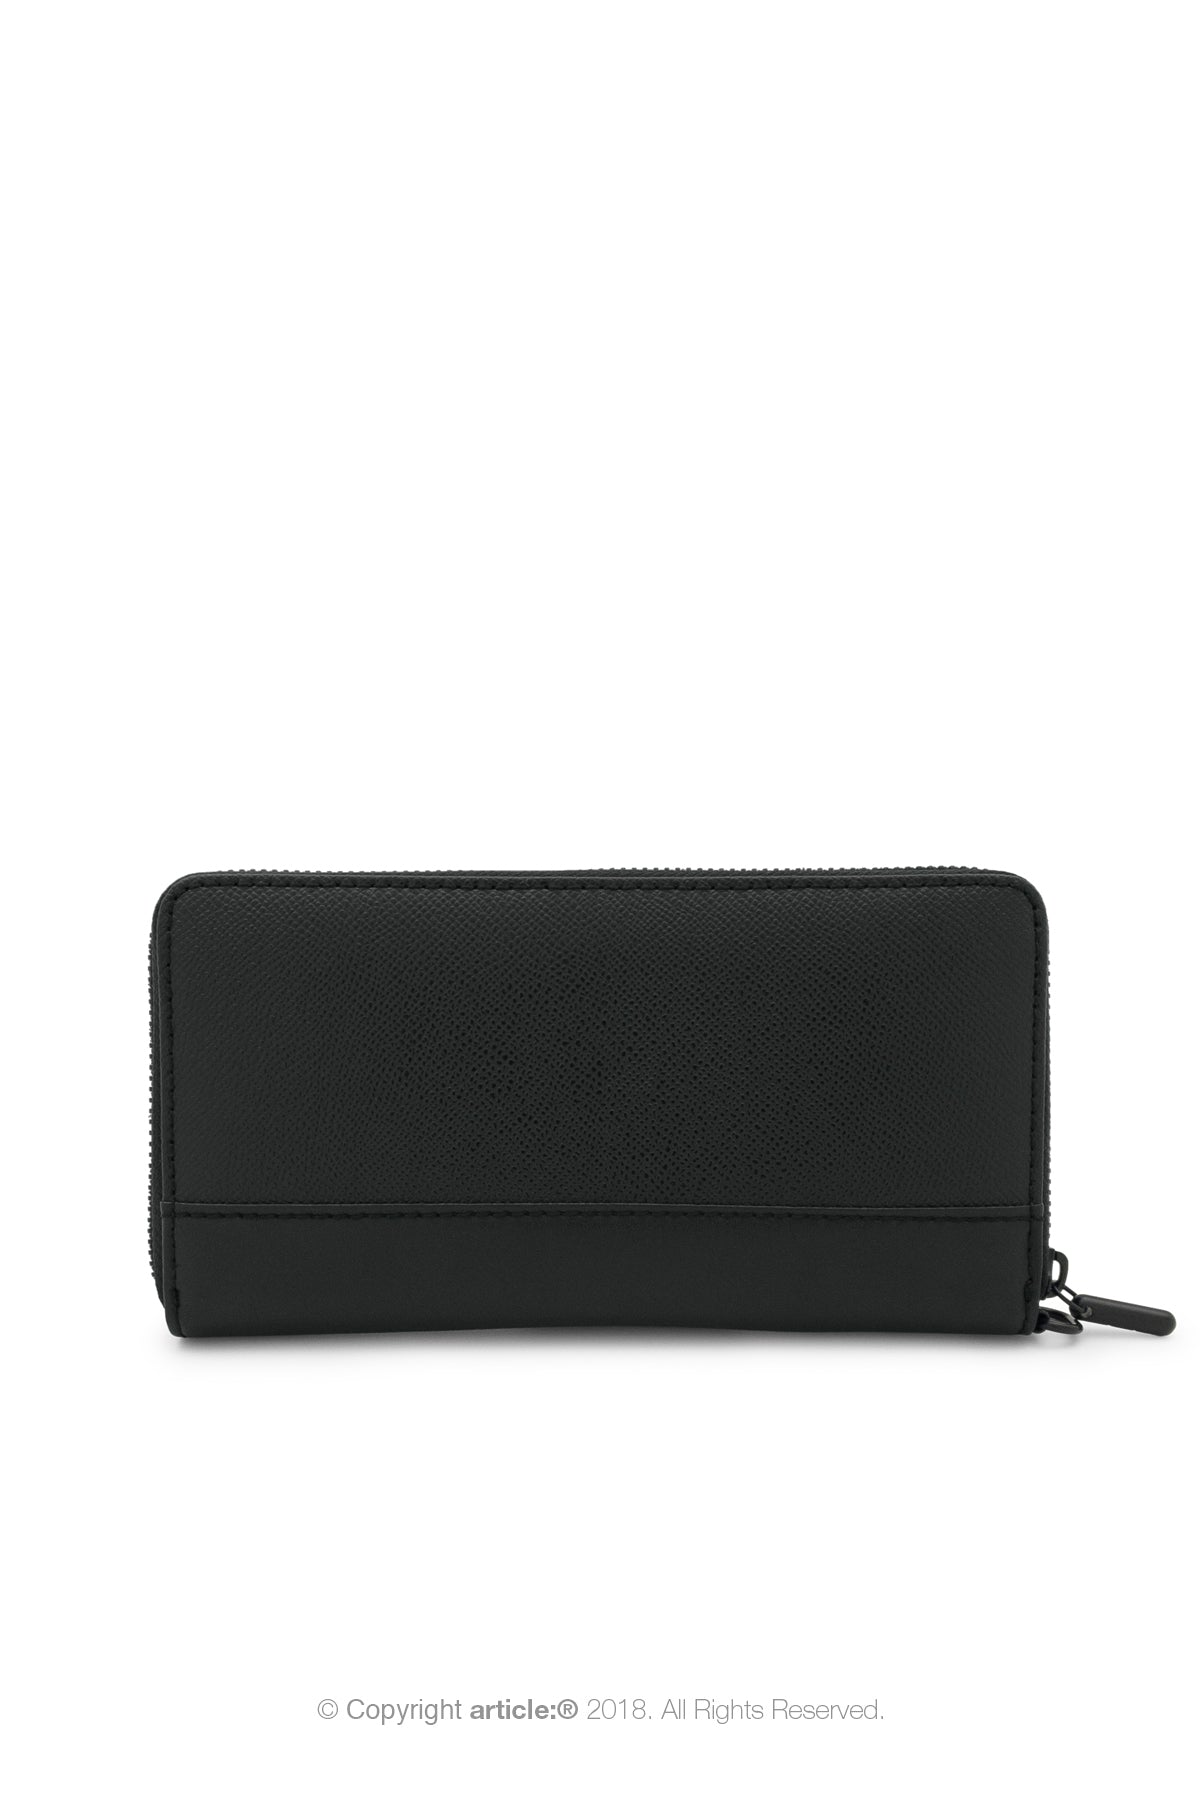 article: #230 Wallet Men - Noir